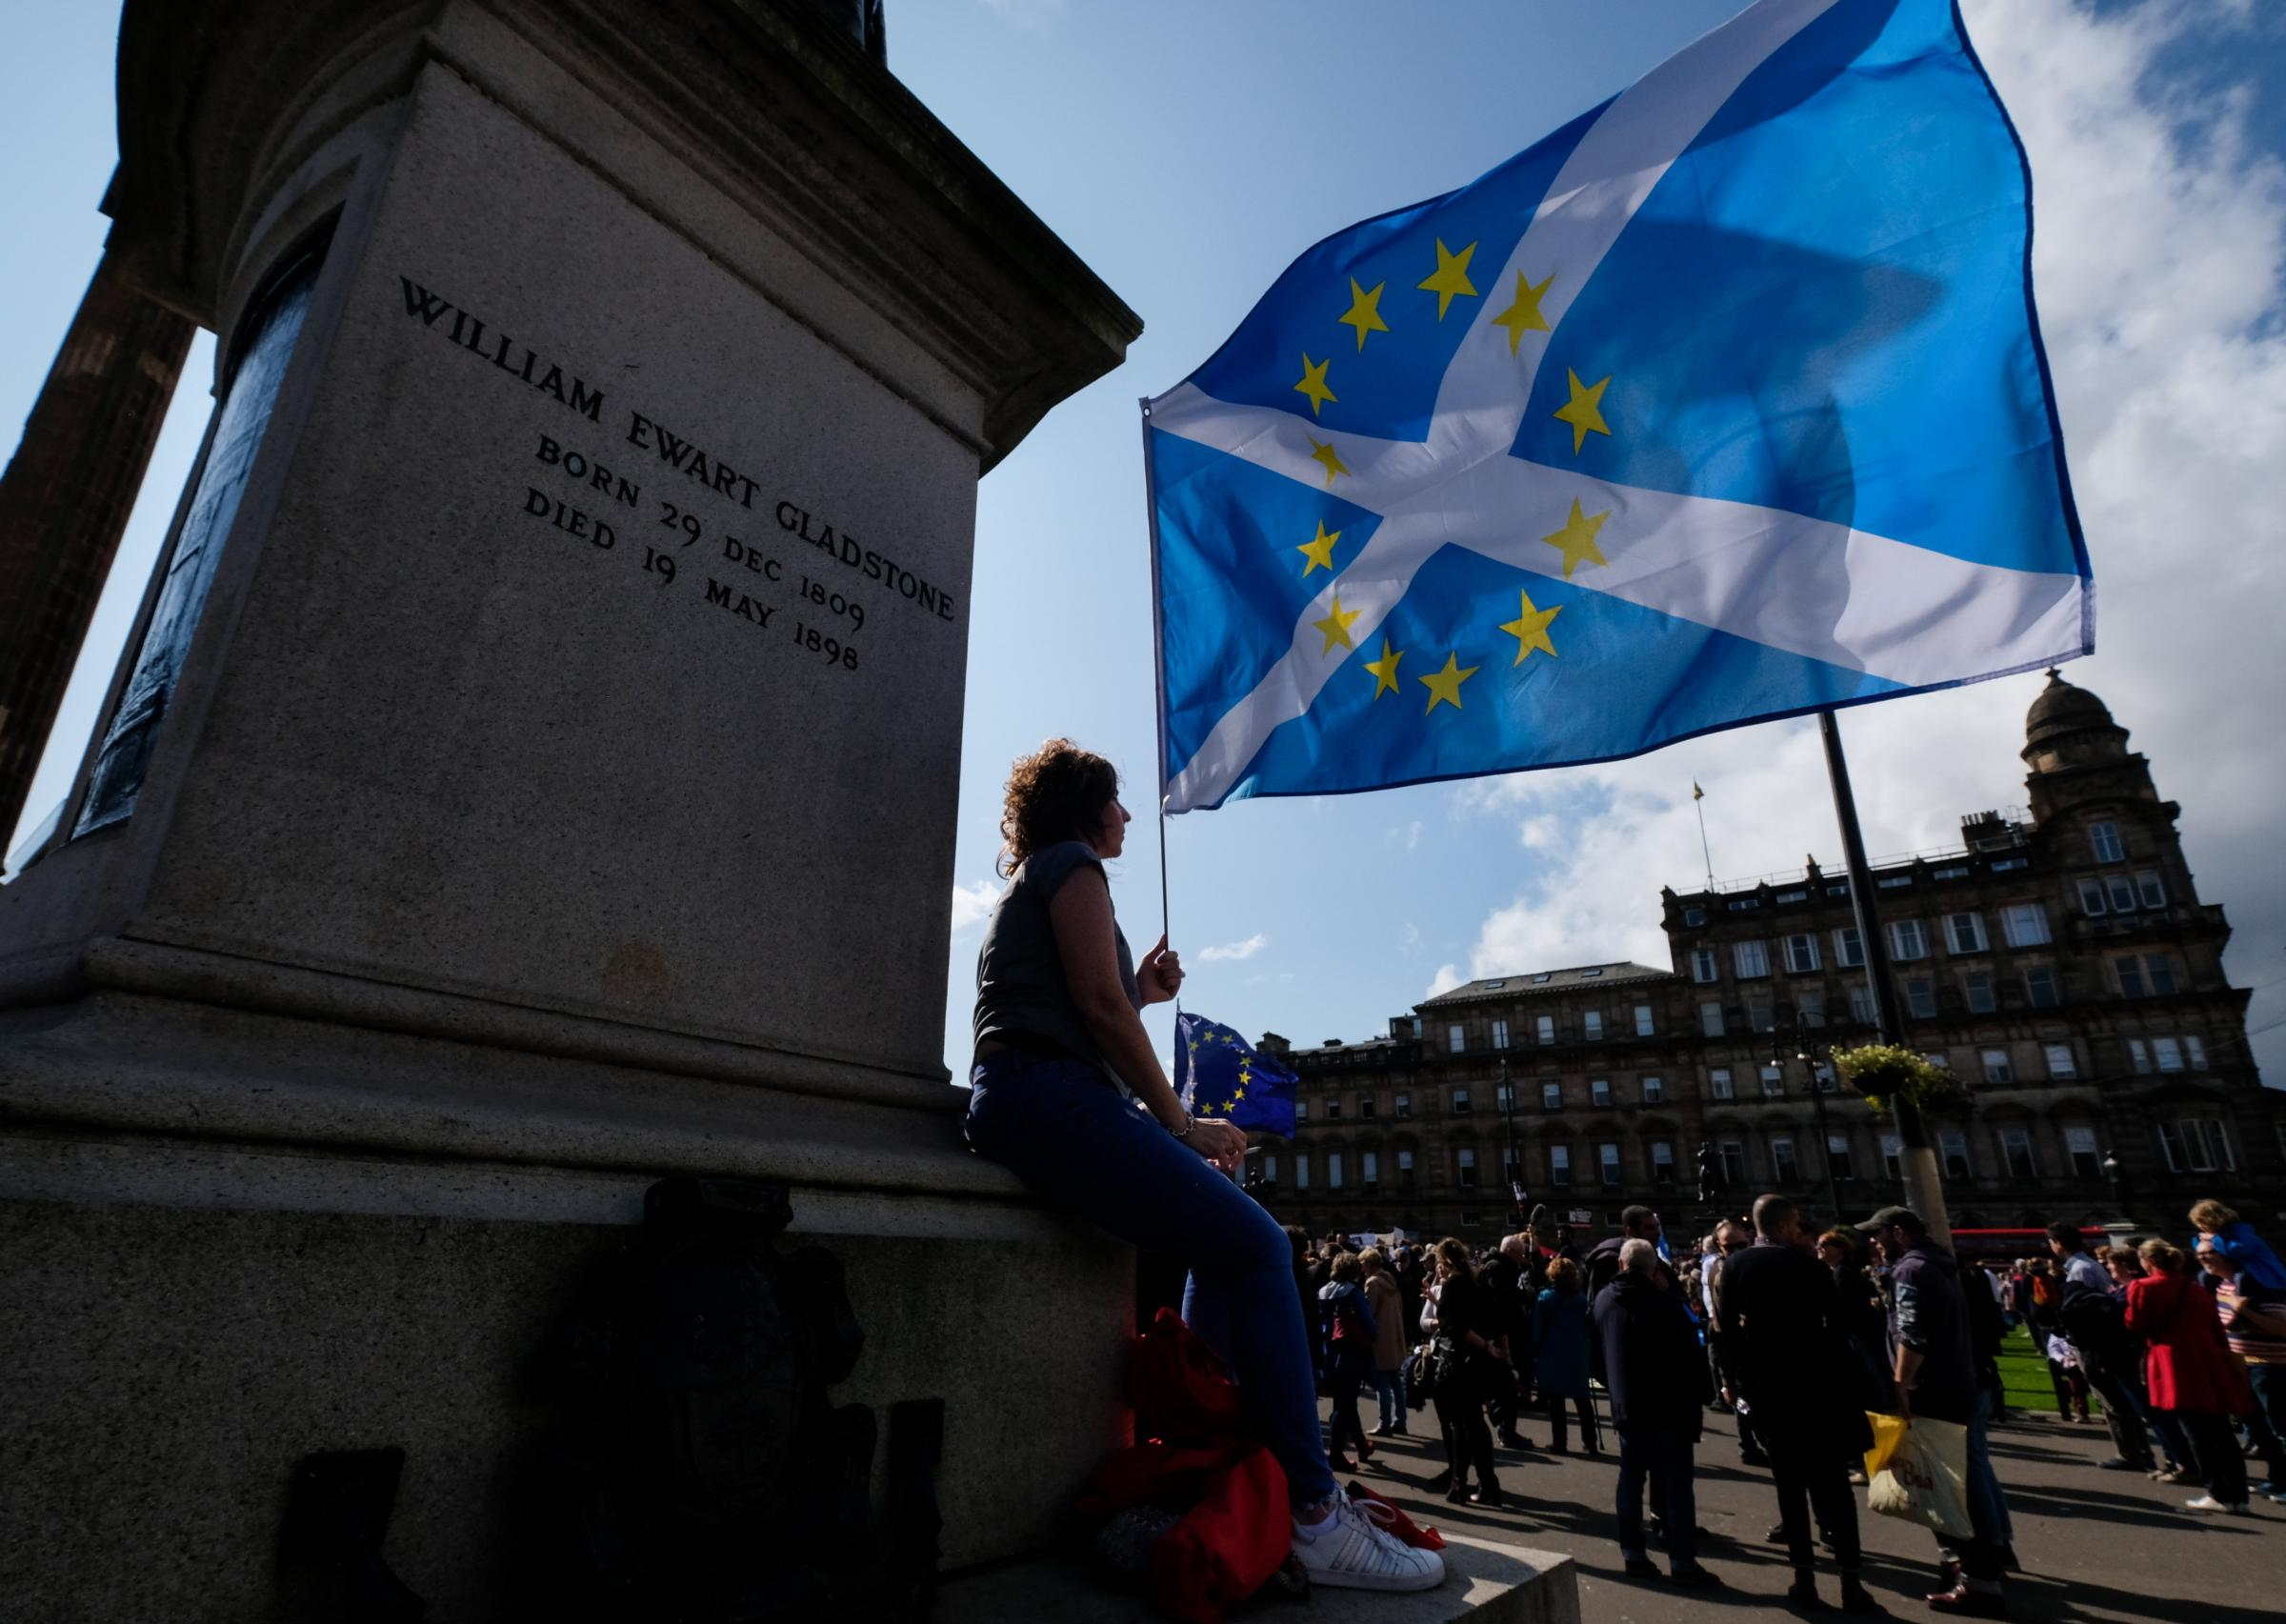 Brexit: EU citizens feel safer in Scotland than England, study finds